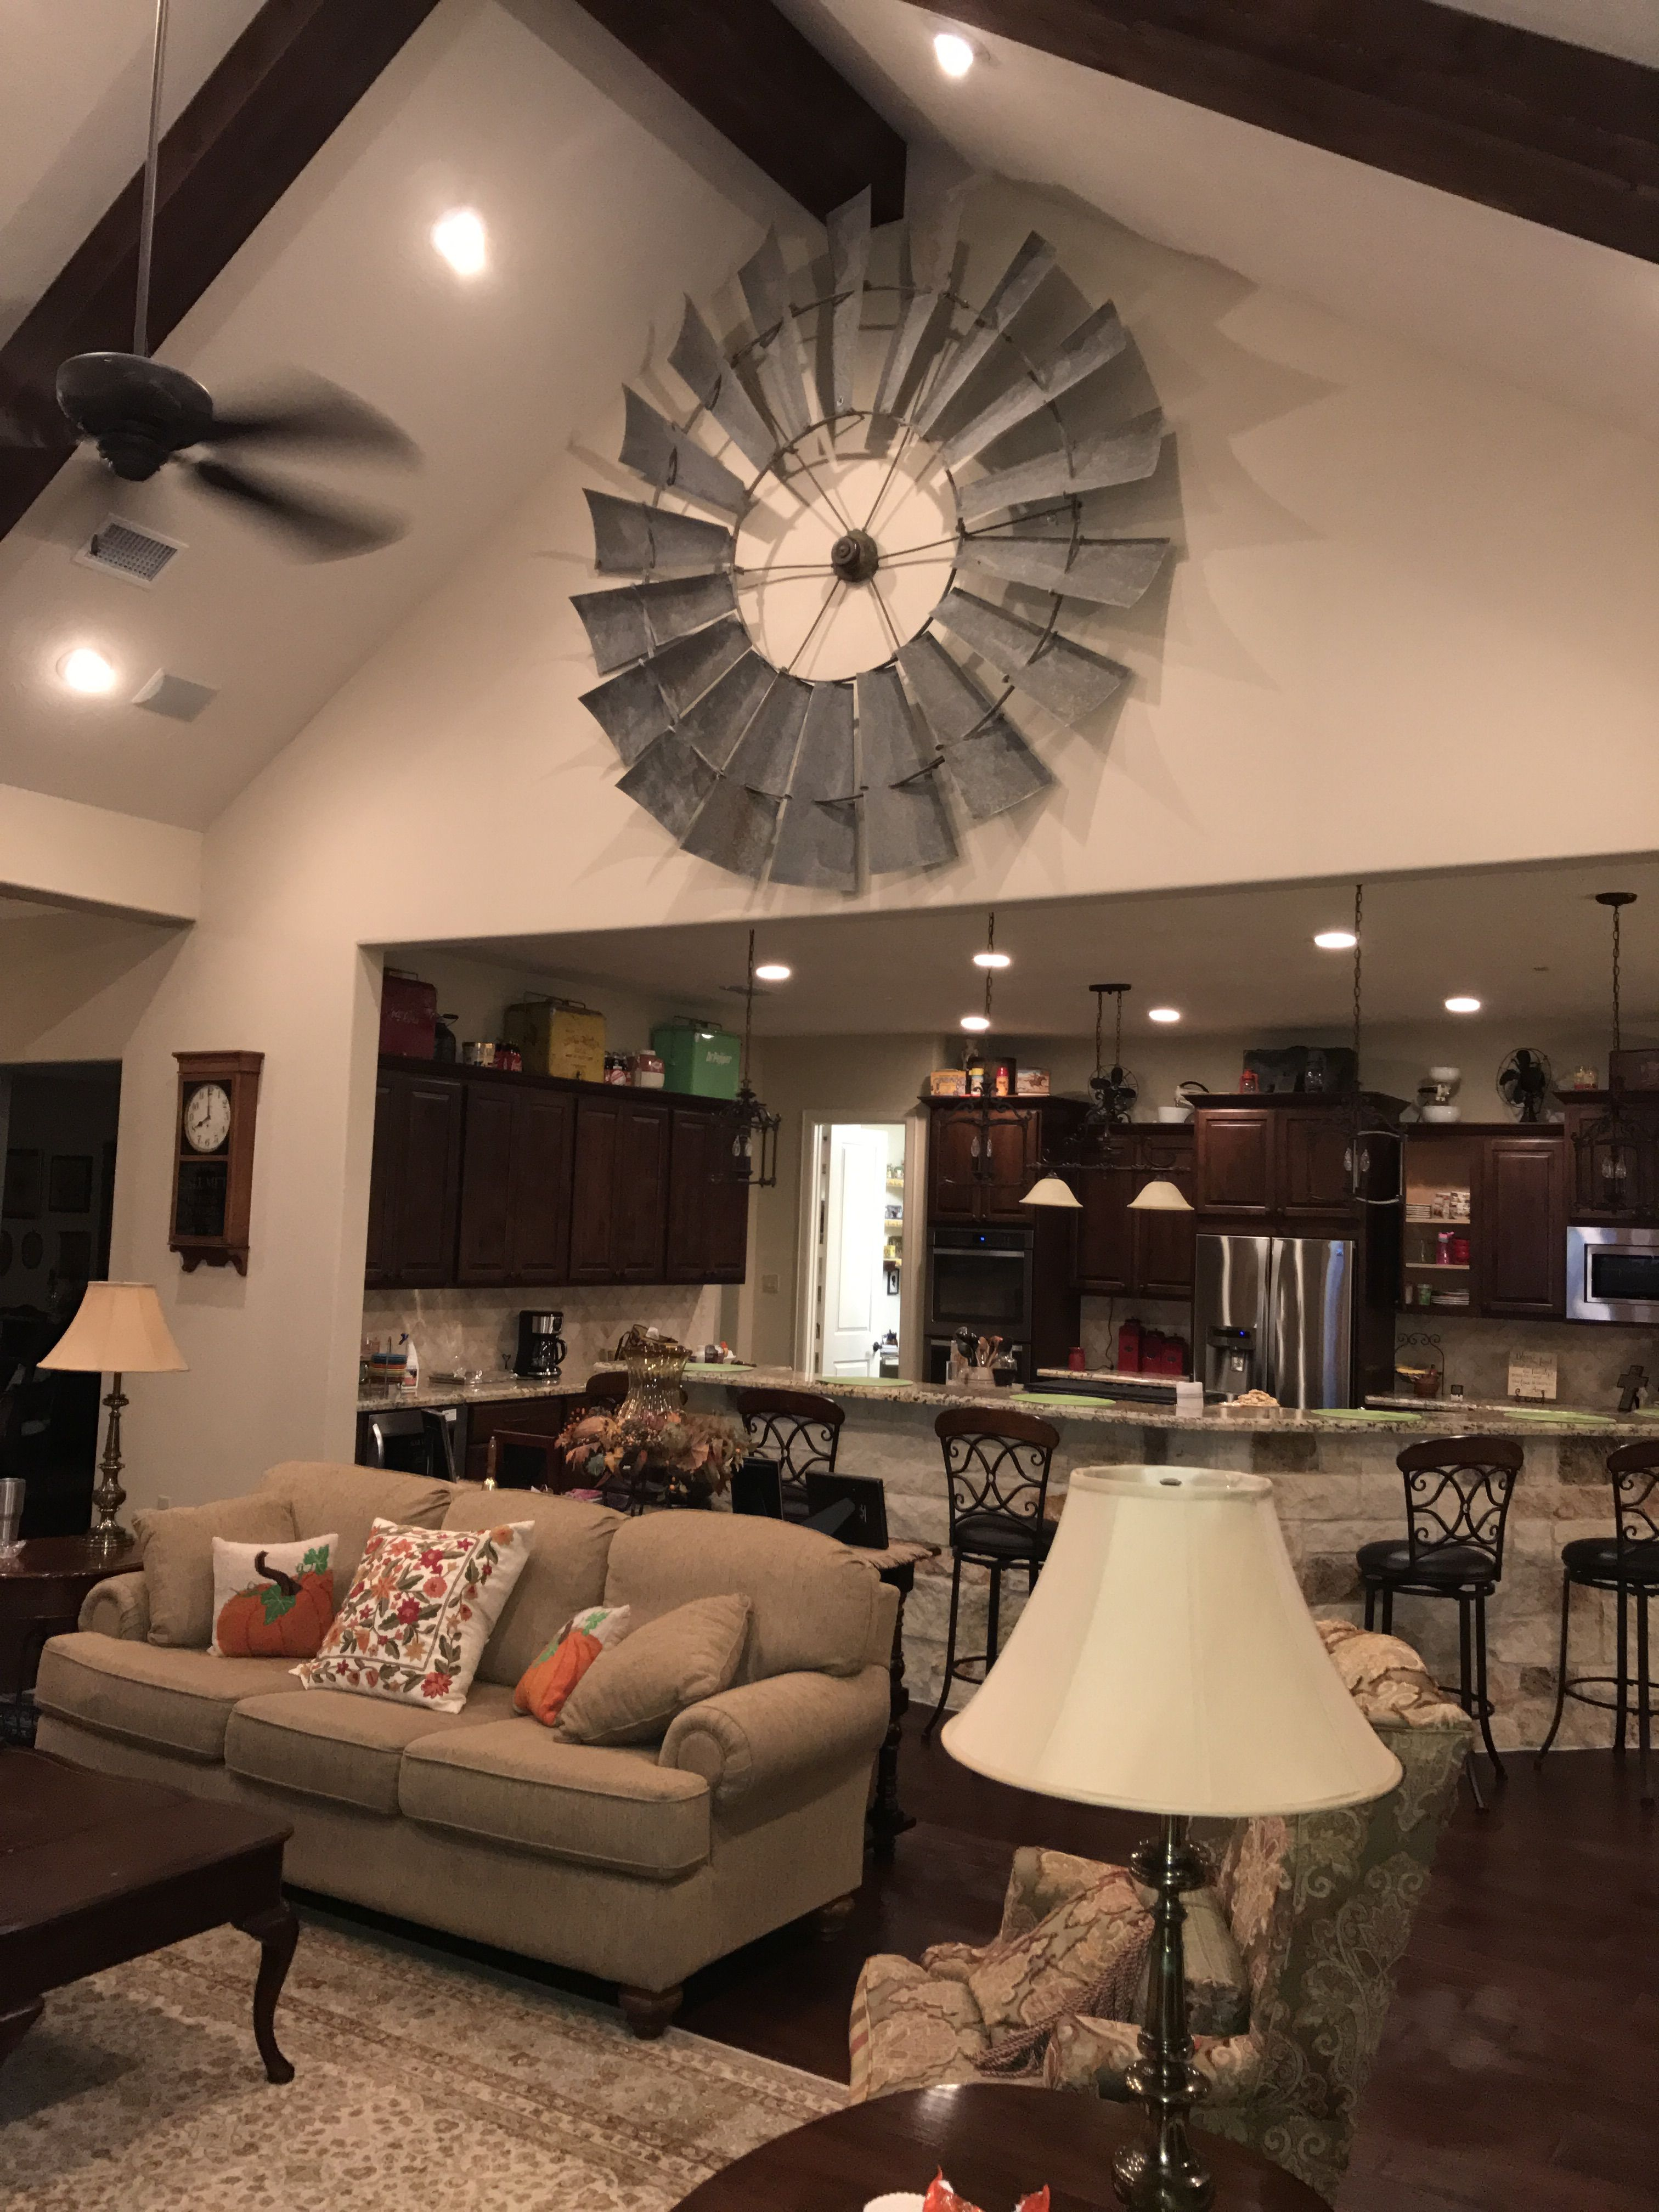 Vintage windmill fan blade added accent to blank wall